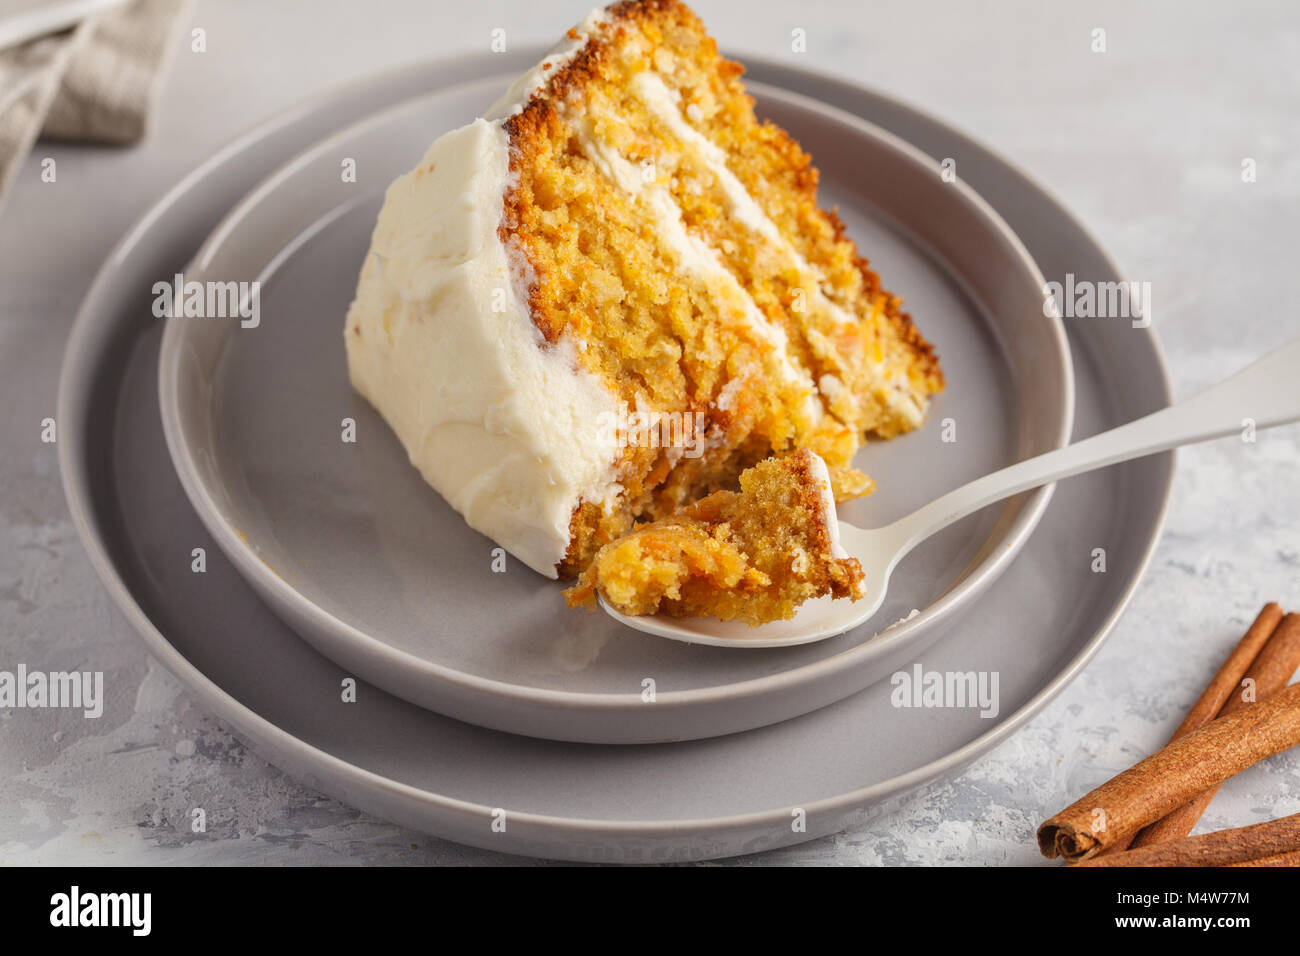 Piece of carrot homemade cake with white cream on a gray background. Festive dessert concept. - Stock Image